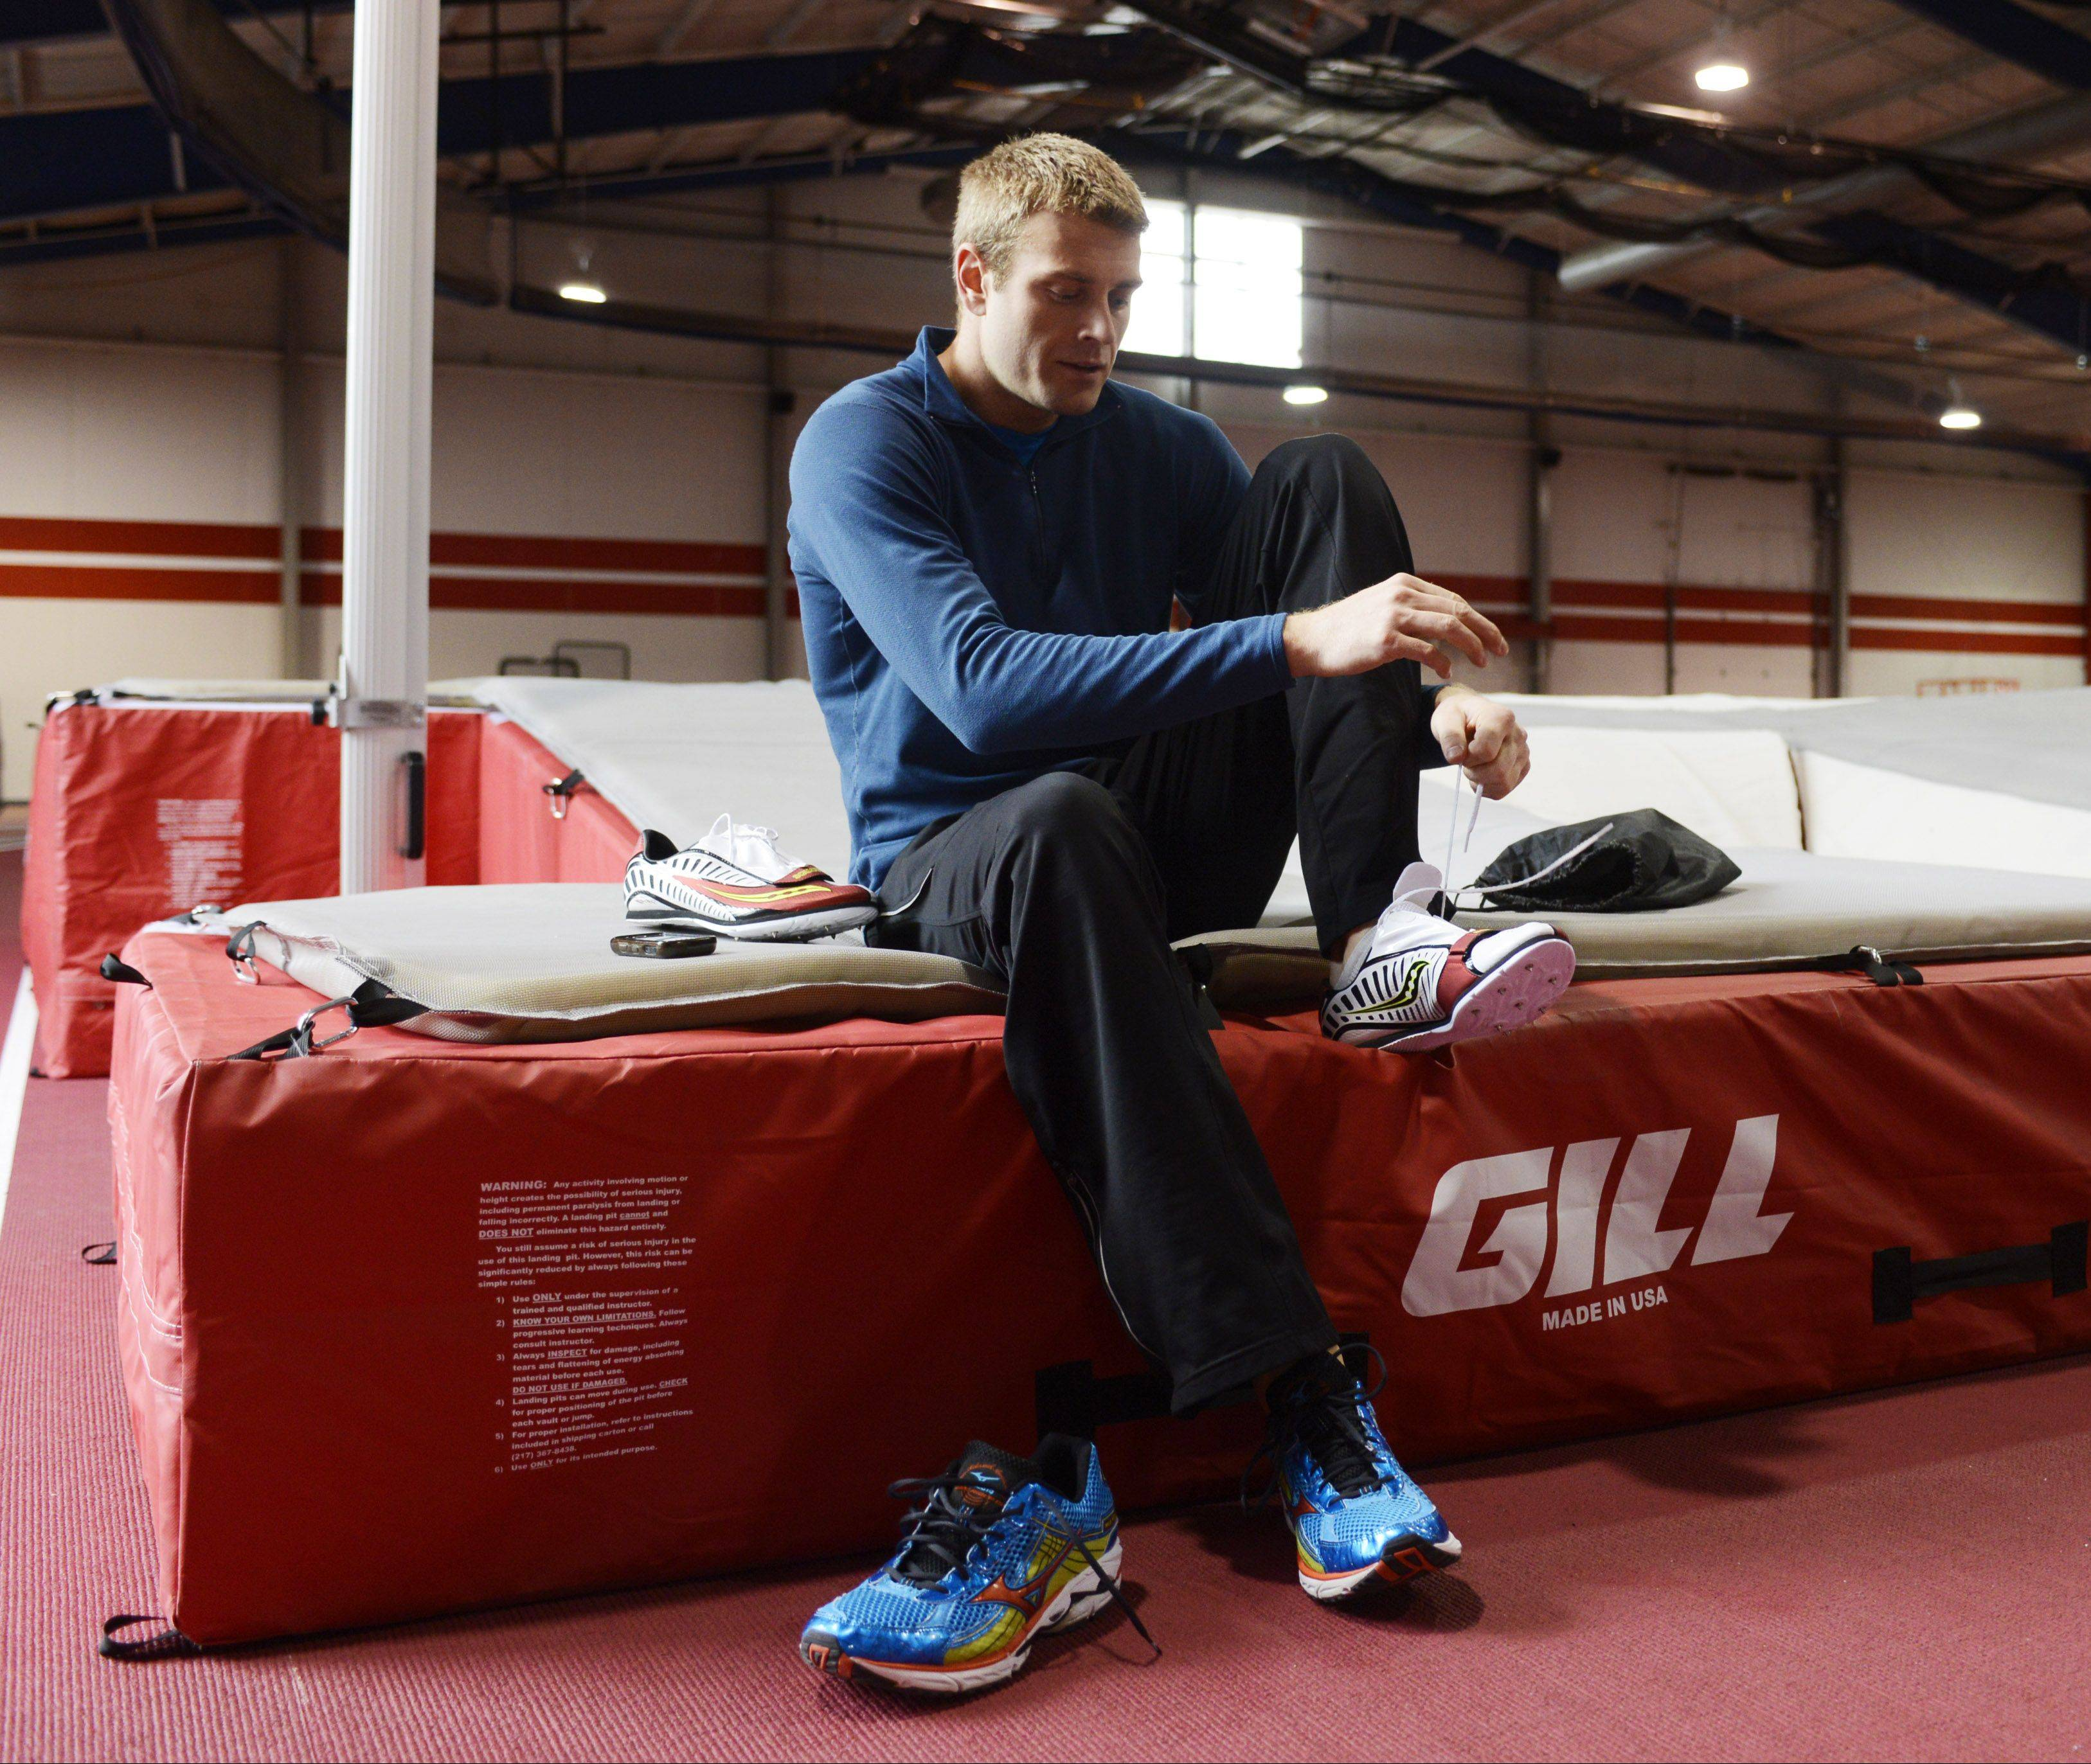 Pole vaulter Darren Niedermeyer laces up his shoes before working out at the Lewis University Field House.